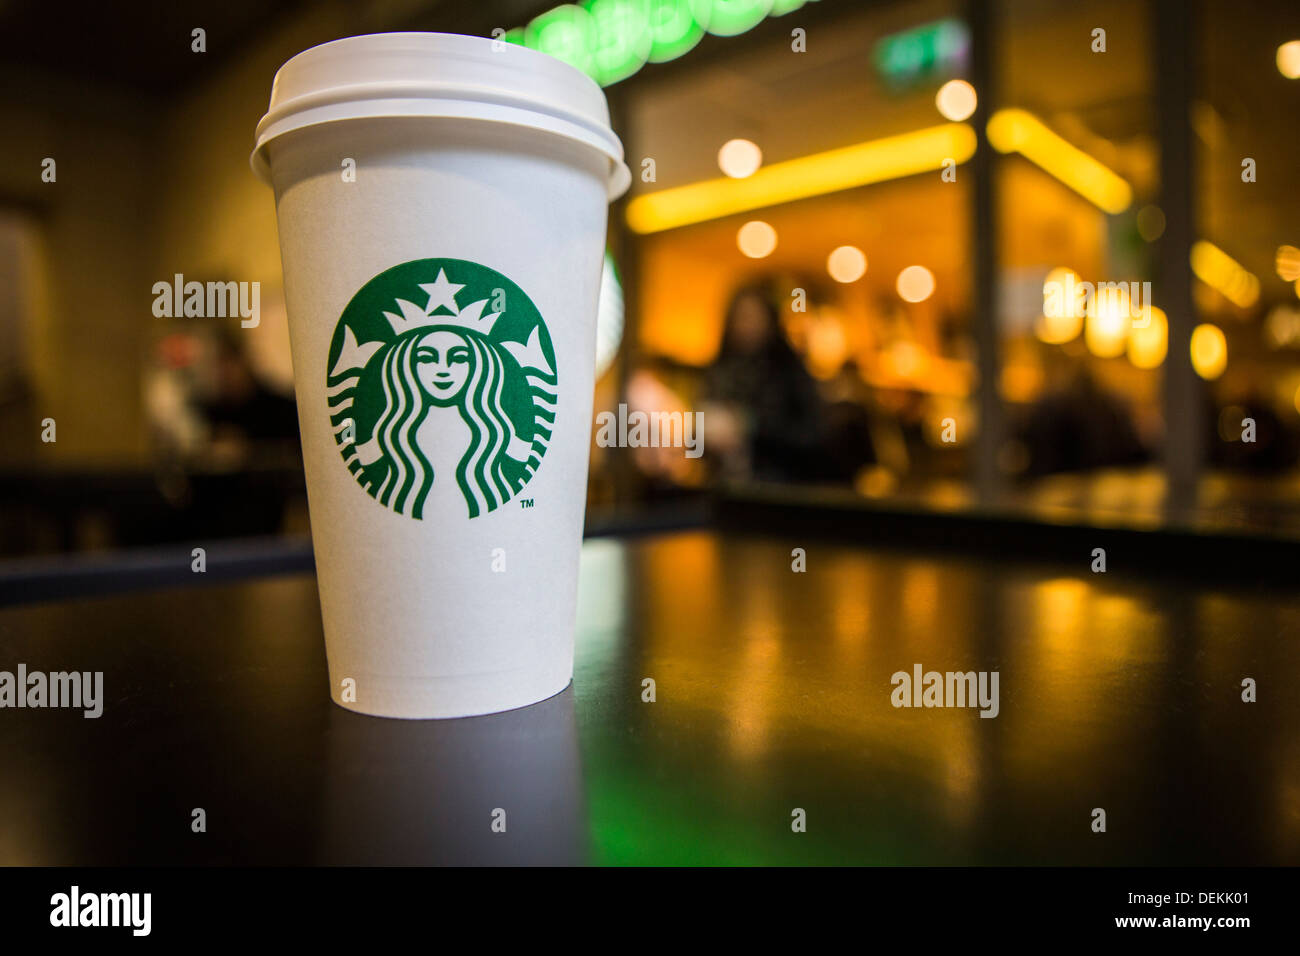 A Starbucks coffee cup sitting on a table outside Starbucks coffee shop, Canary Wharf. London, UK. Stock Photo